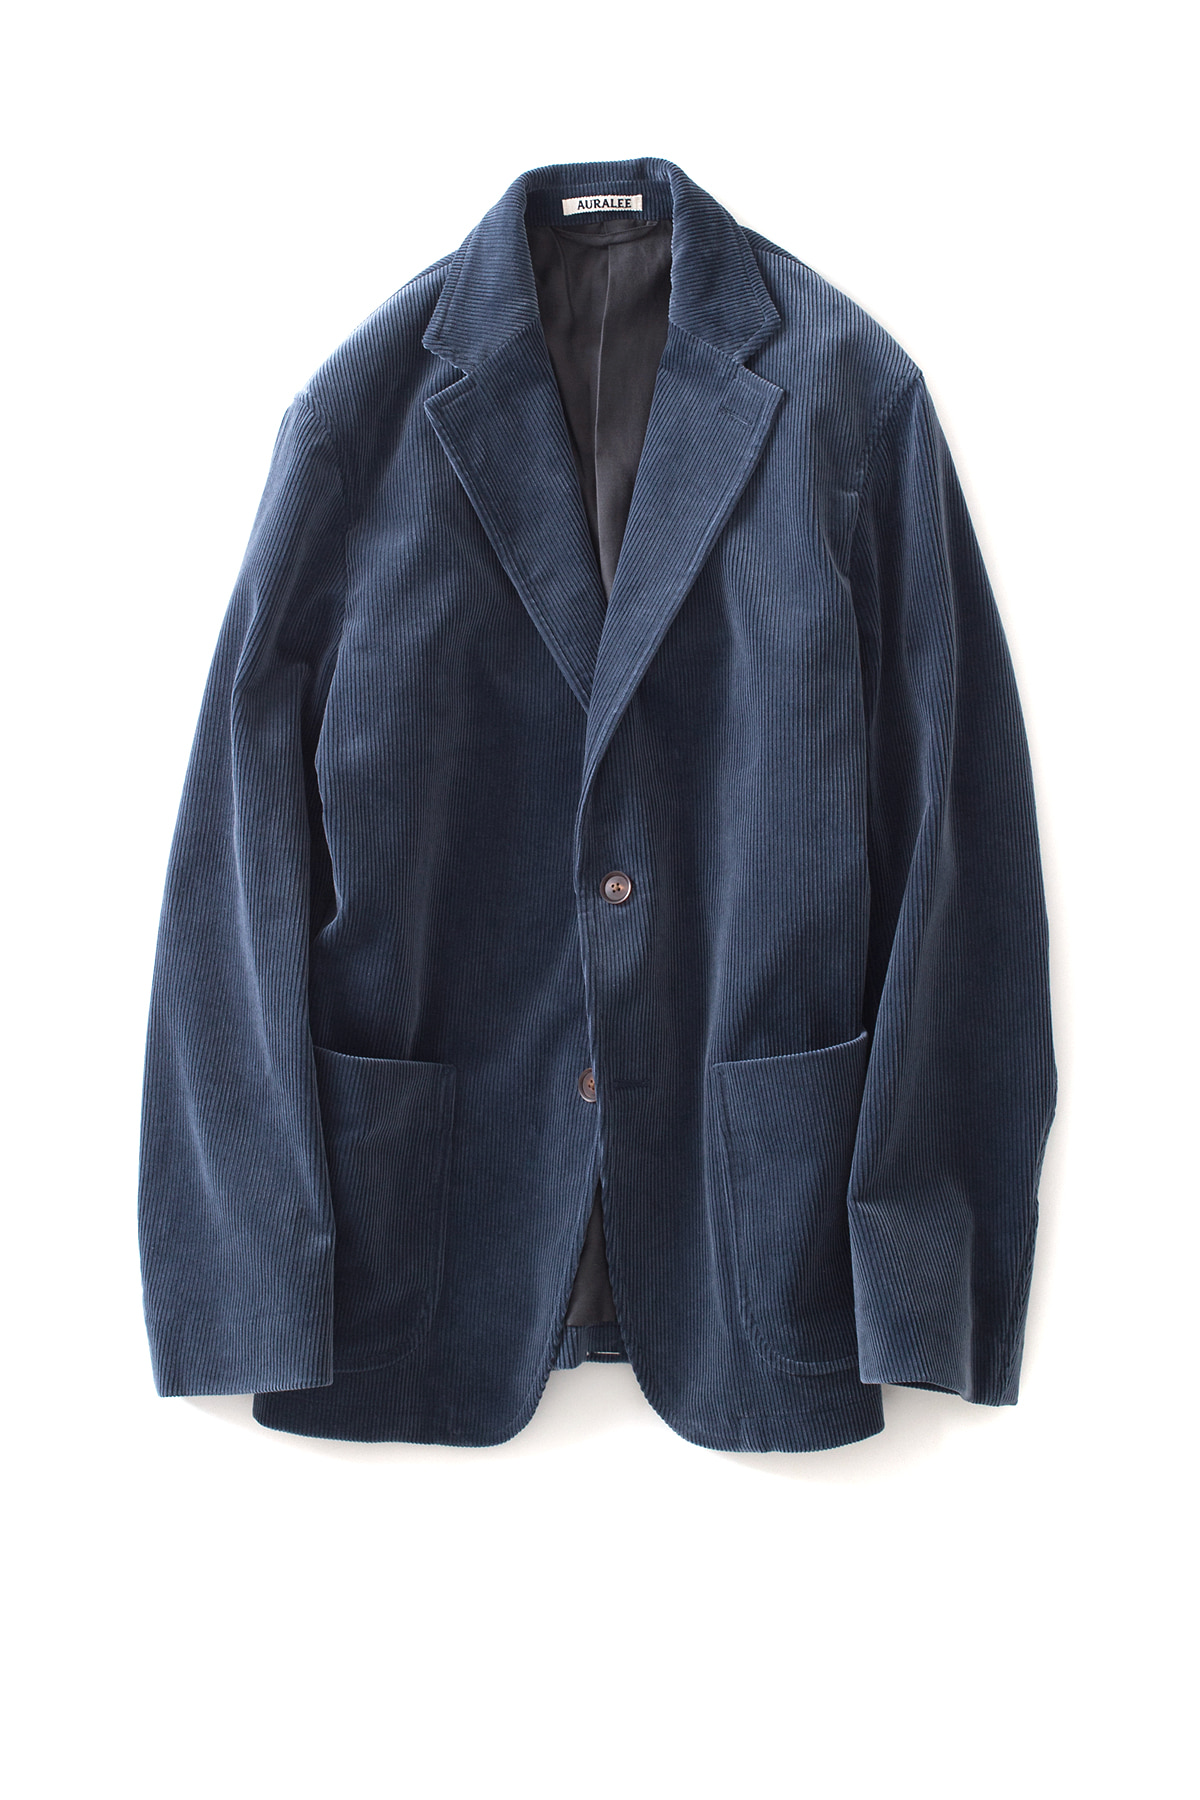 Auralee : Washed Corduroy Jacket (Dark Blue)